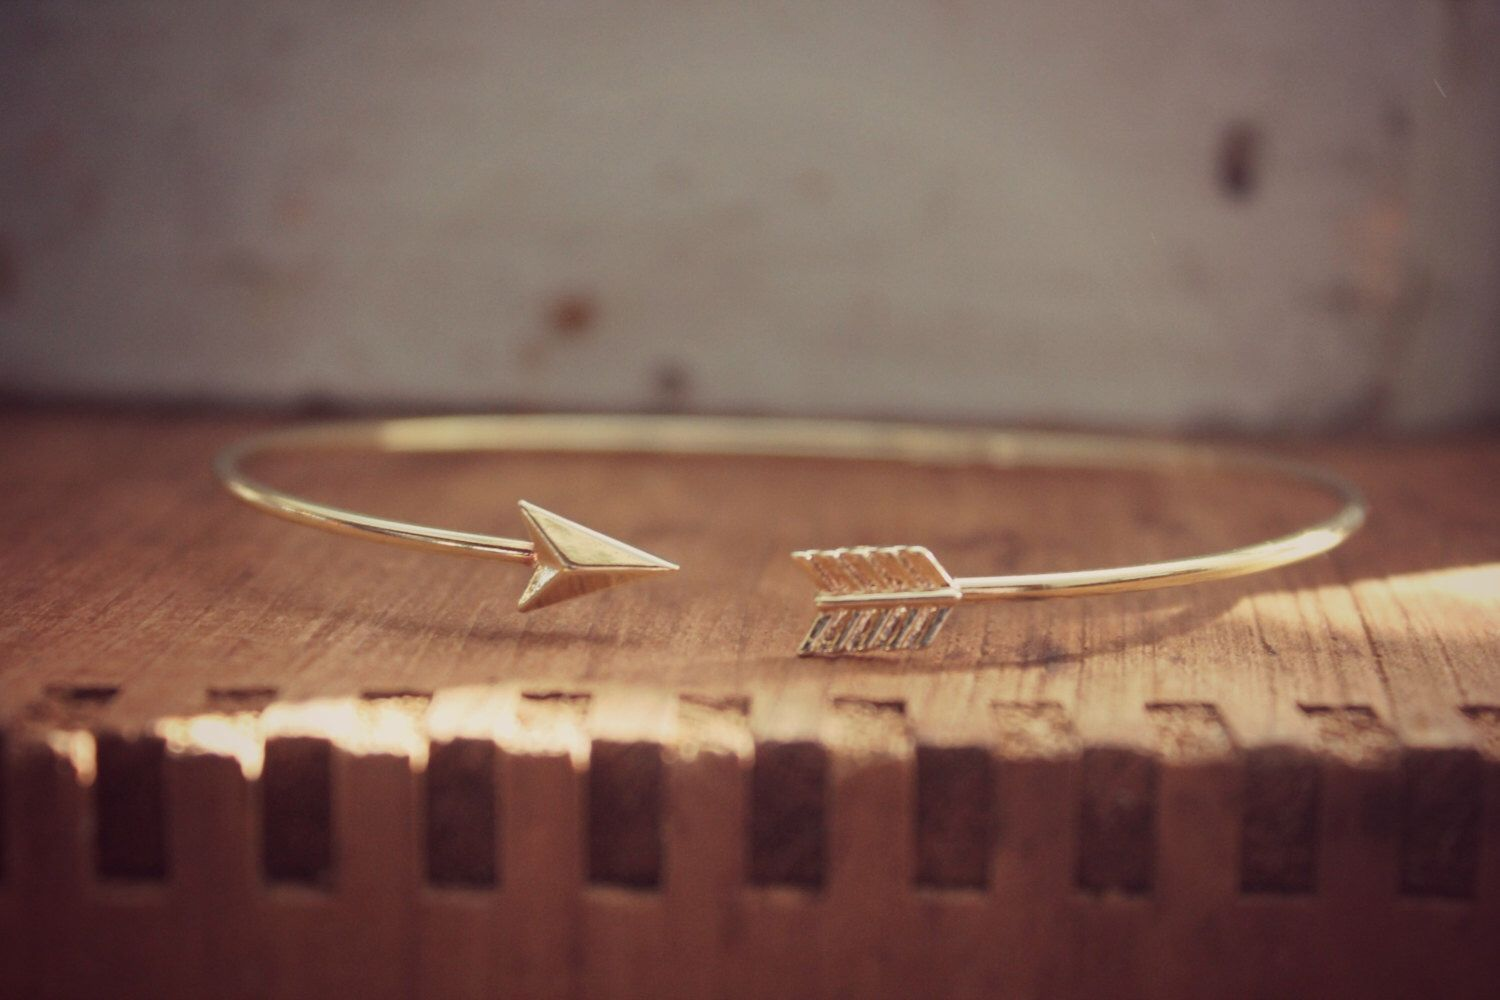 Minimalist Simple Arrow Bracelet, Gold Plated Minimialist Bracelet, Layering Bracelet, Arrow Bracelet, Stackable Bangle, Tiny Arrow by HoneyThorns on Etsy https://www.etsy.com/listing/264036073/minimalist-simple-arrow-bracelet-gold